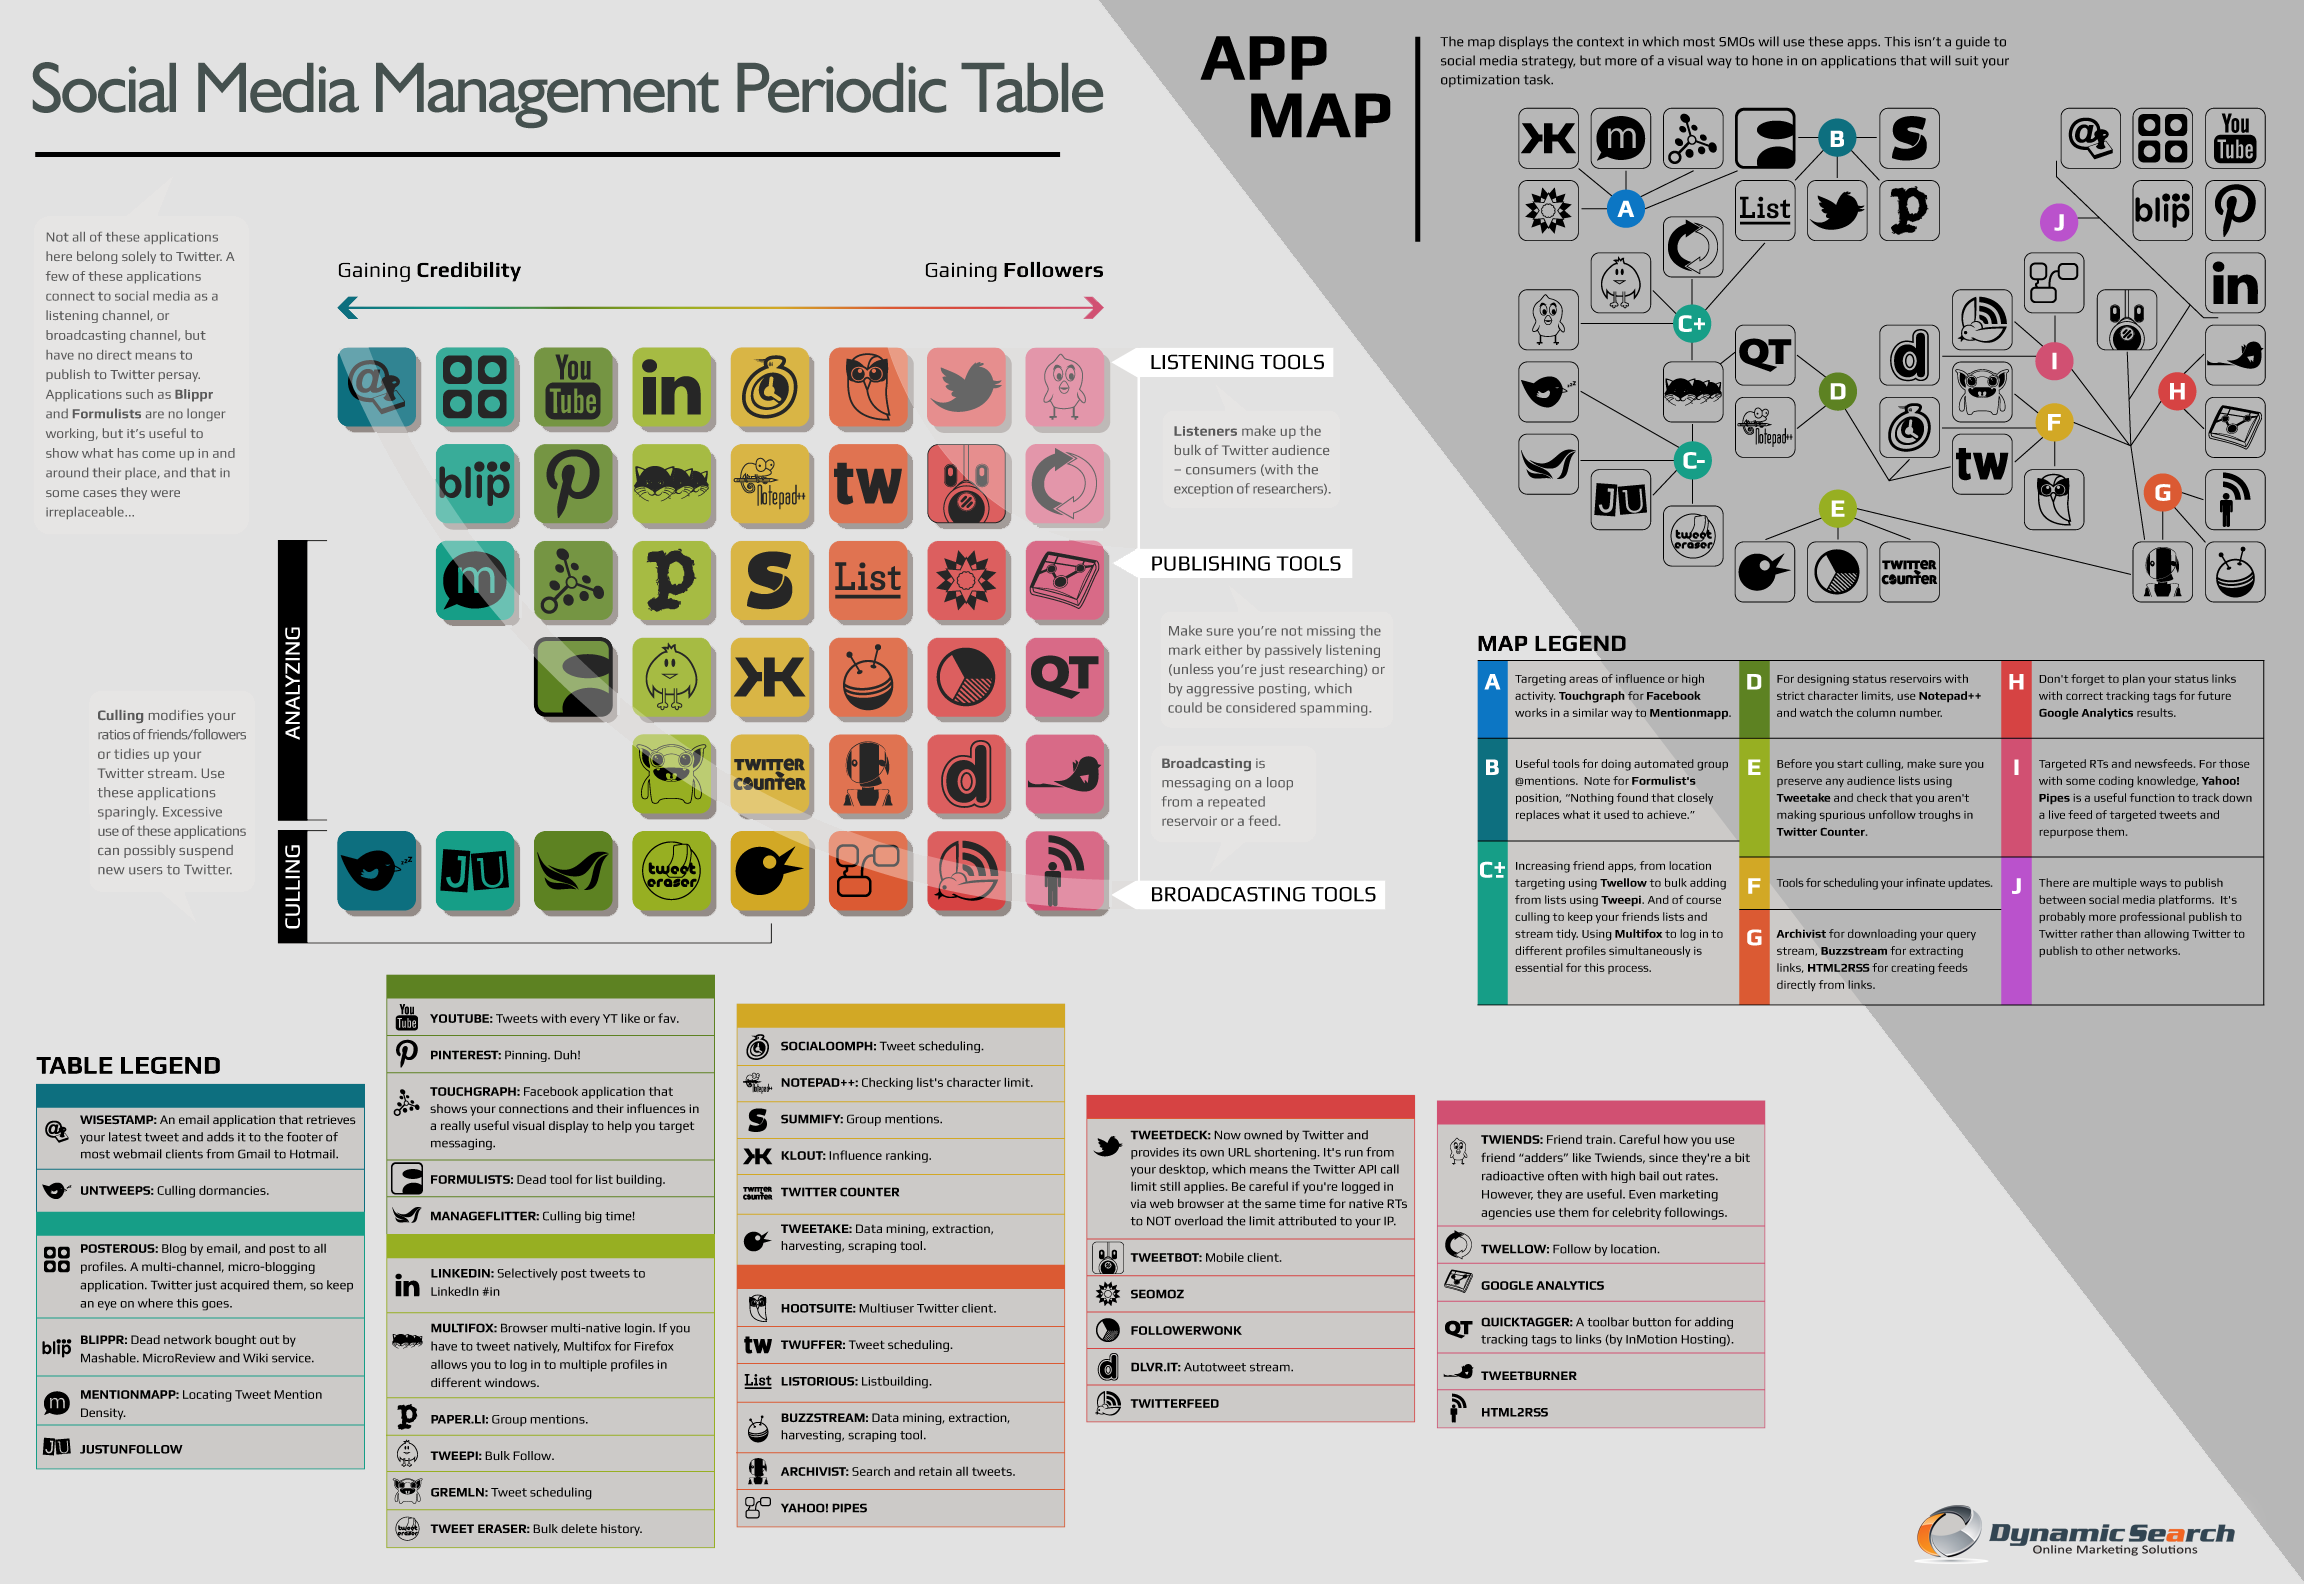 Social Media Management Periodic Table [INFOGRAPHIC